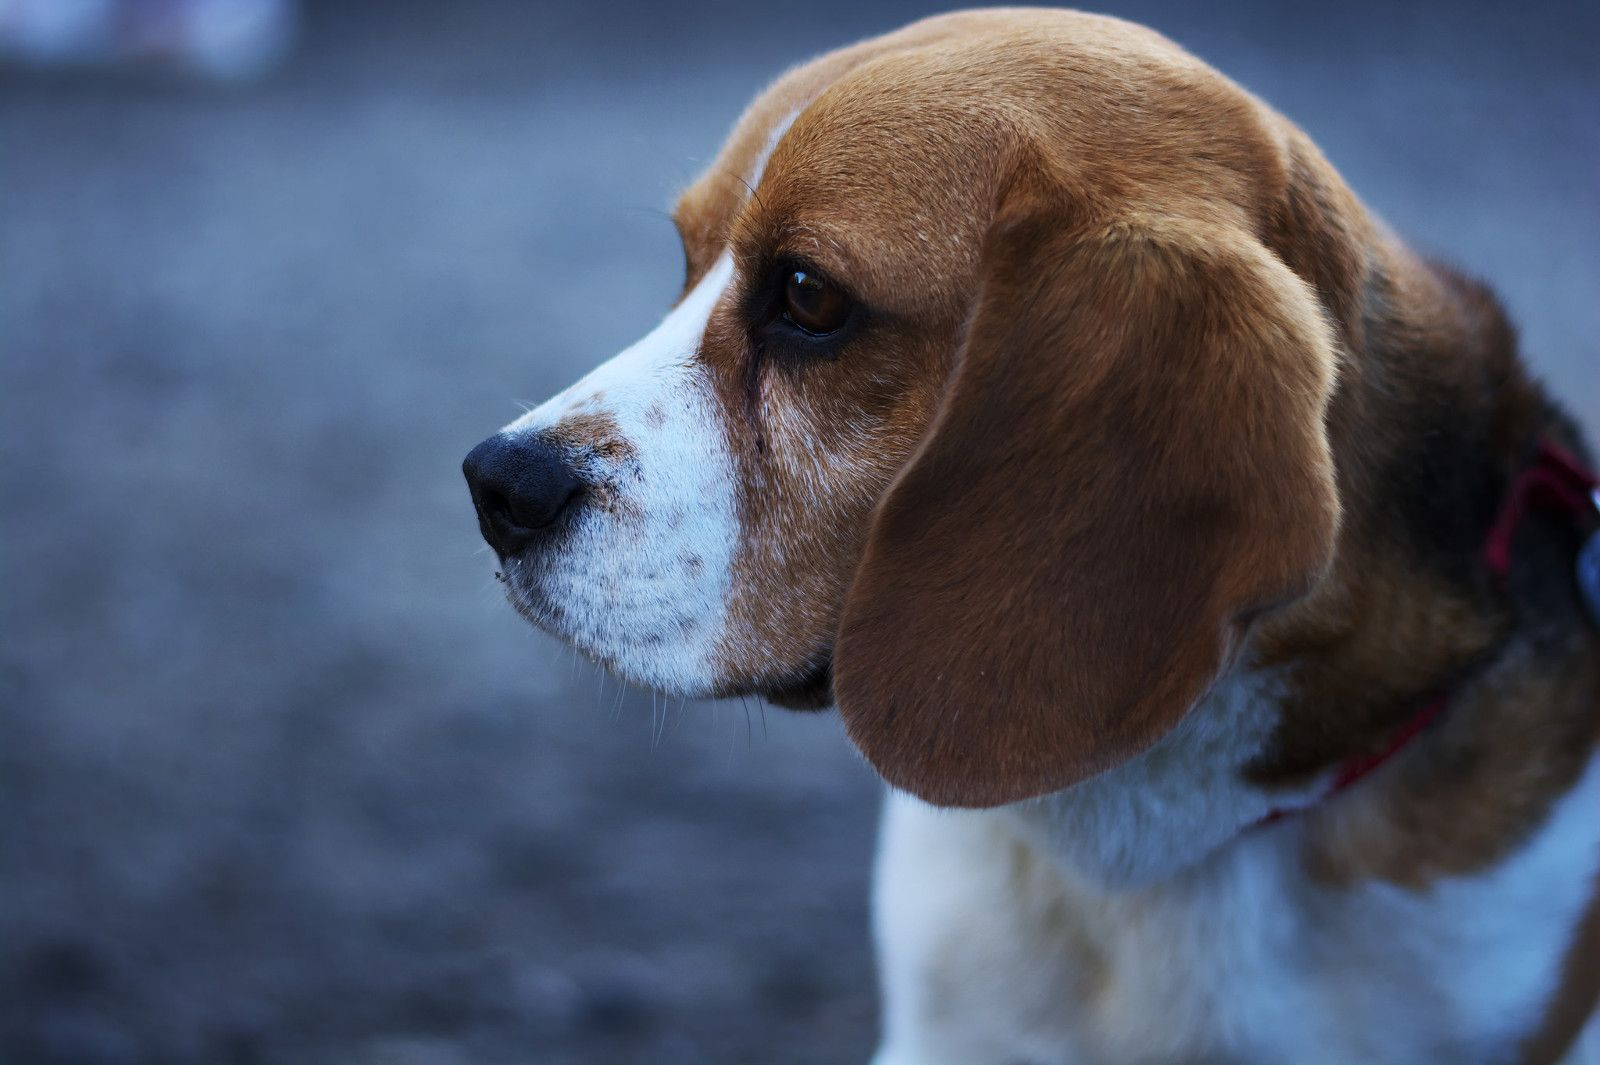 Beagle Breeding Facility For Lab Testing Approved Let S Stop This